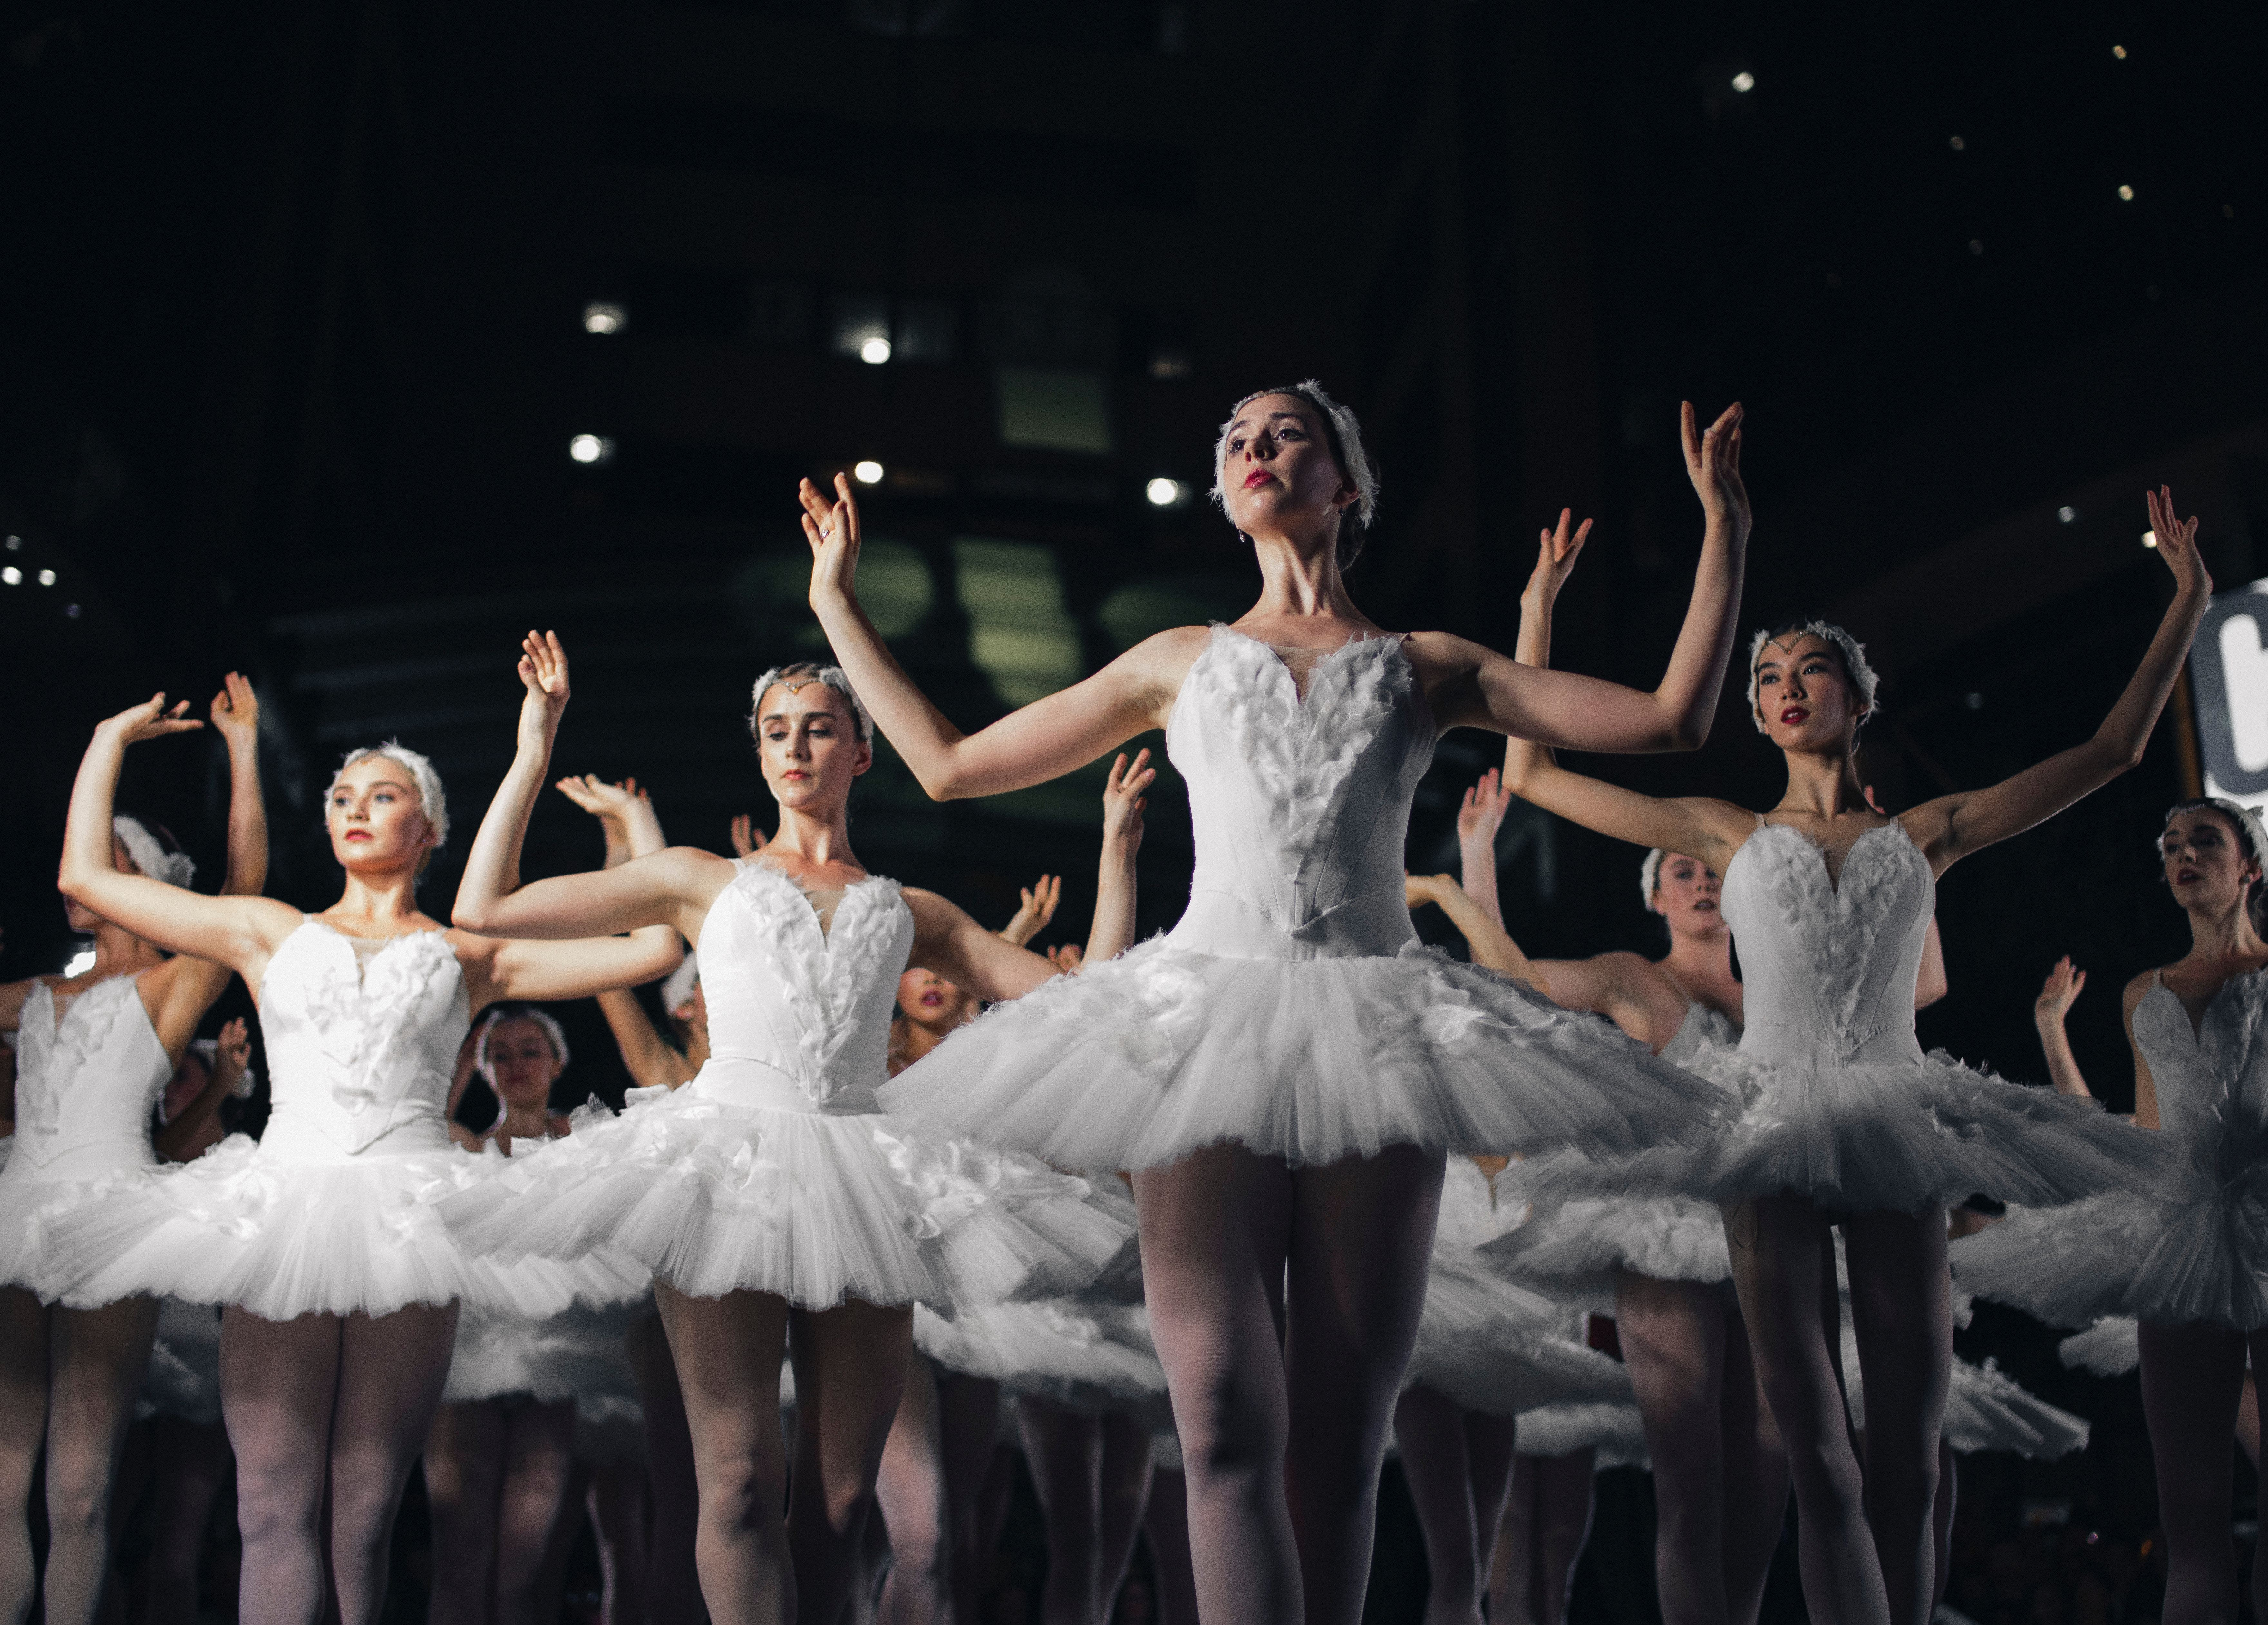 Ballet dancers in white costumes